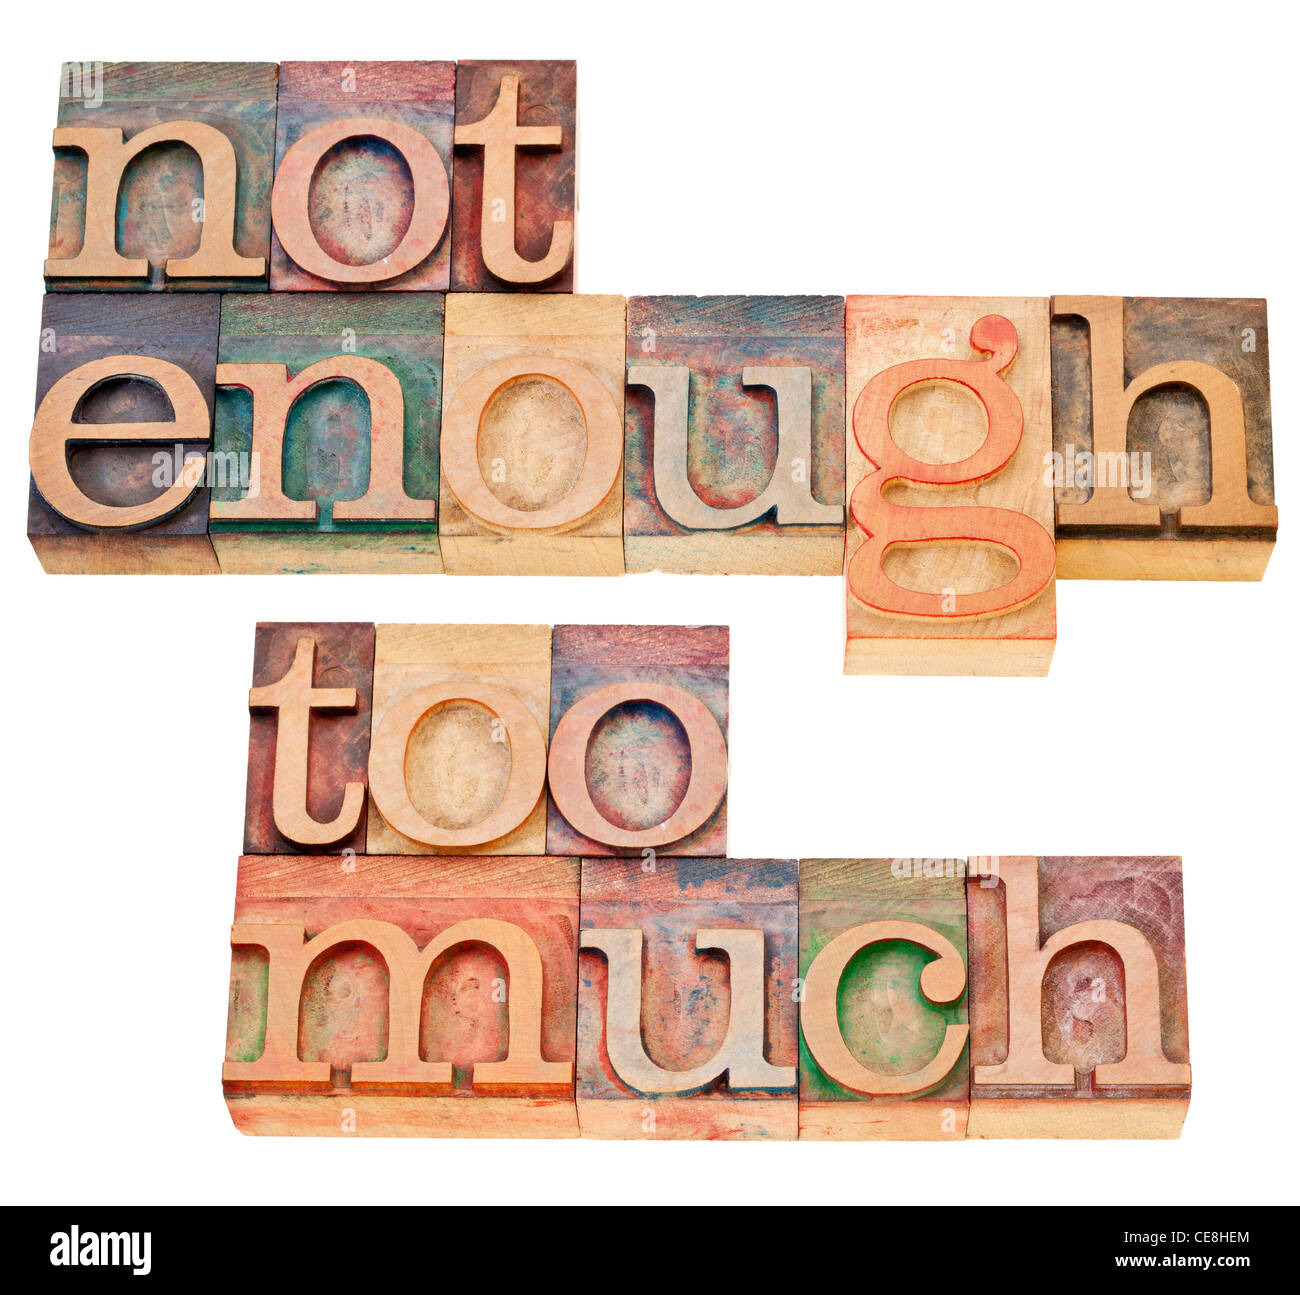 not enough, too much - supply and demand or consumerism concept - a collage of isolated text - Stock Image